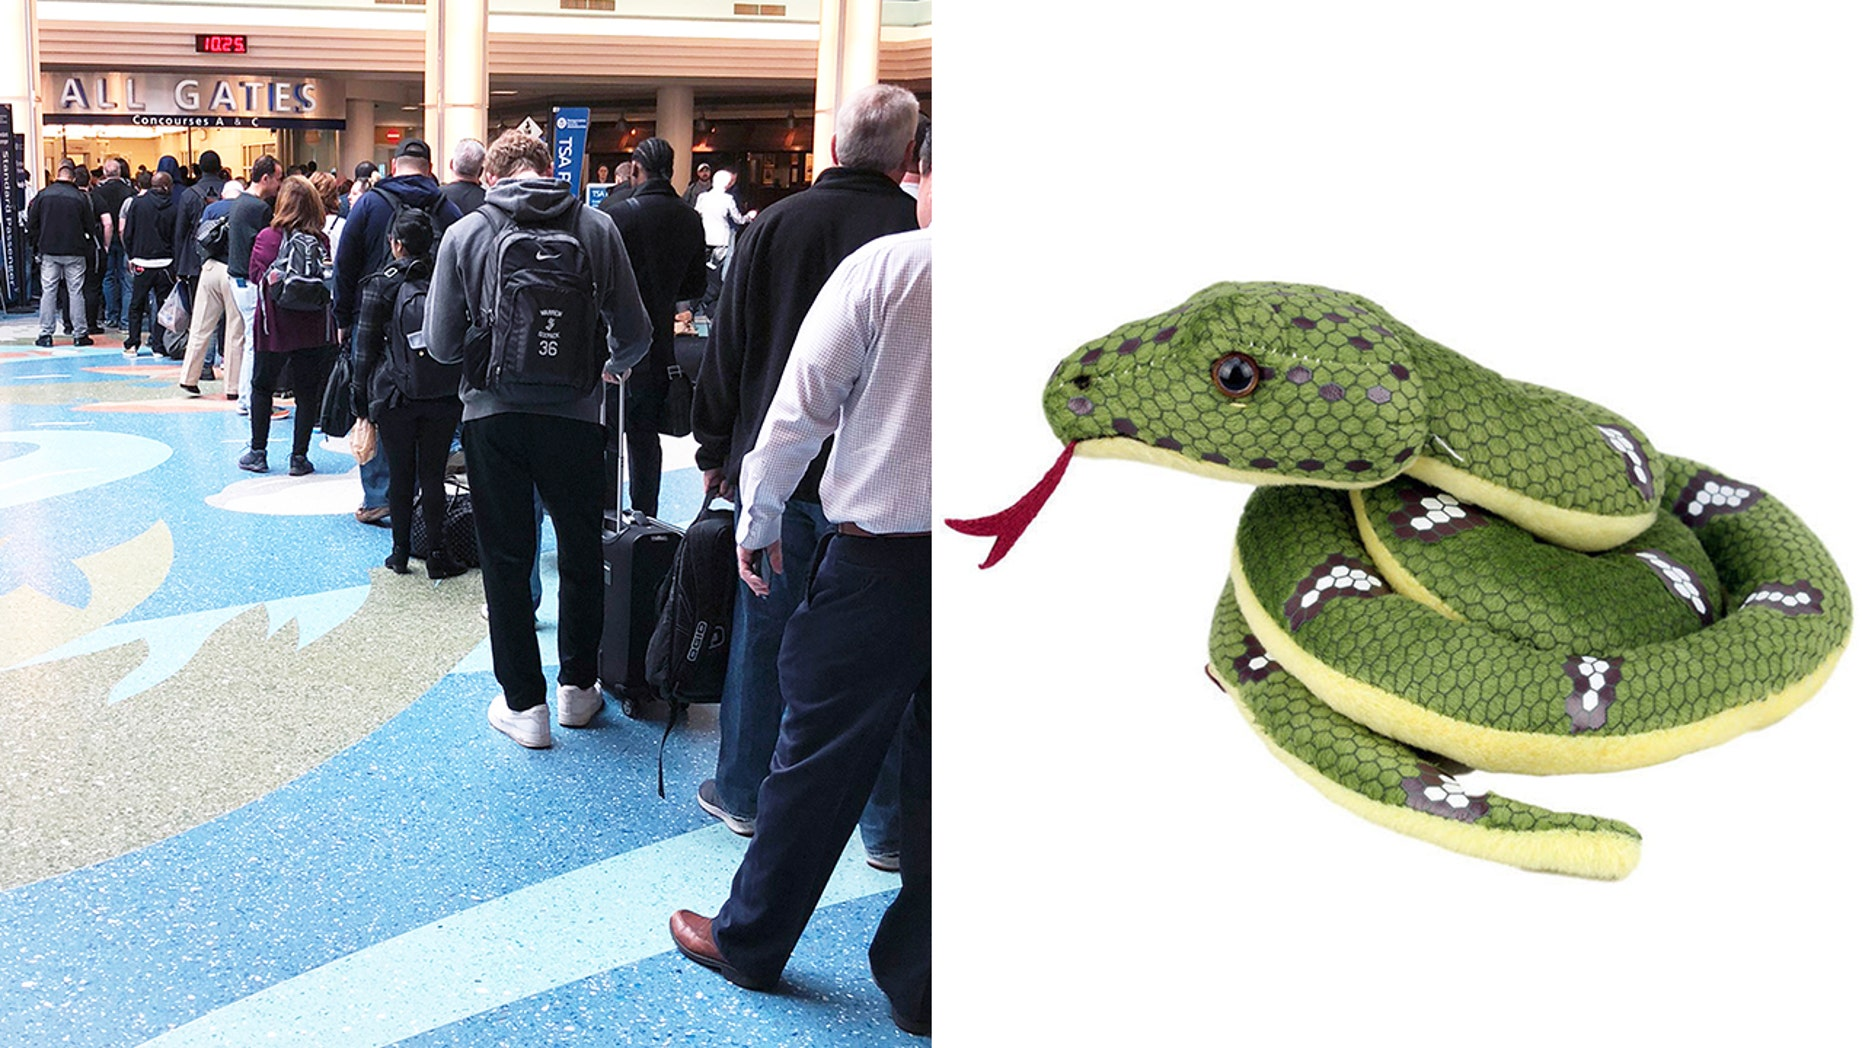 A five-year-old boy had to leave behind his beloved snake toy becausethe airport allegedly wouldn't let him fly with it.